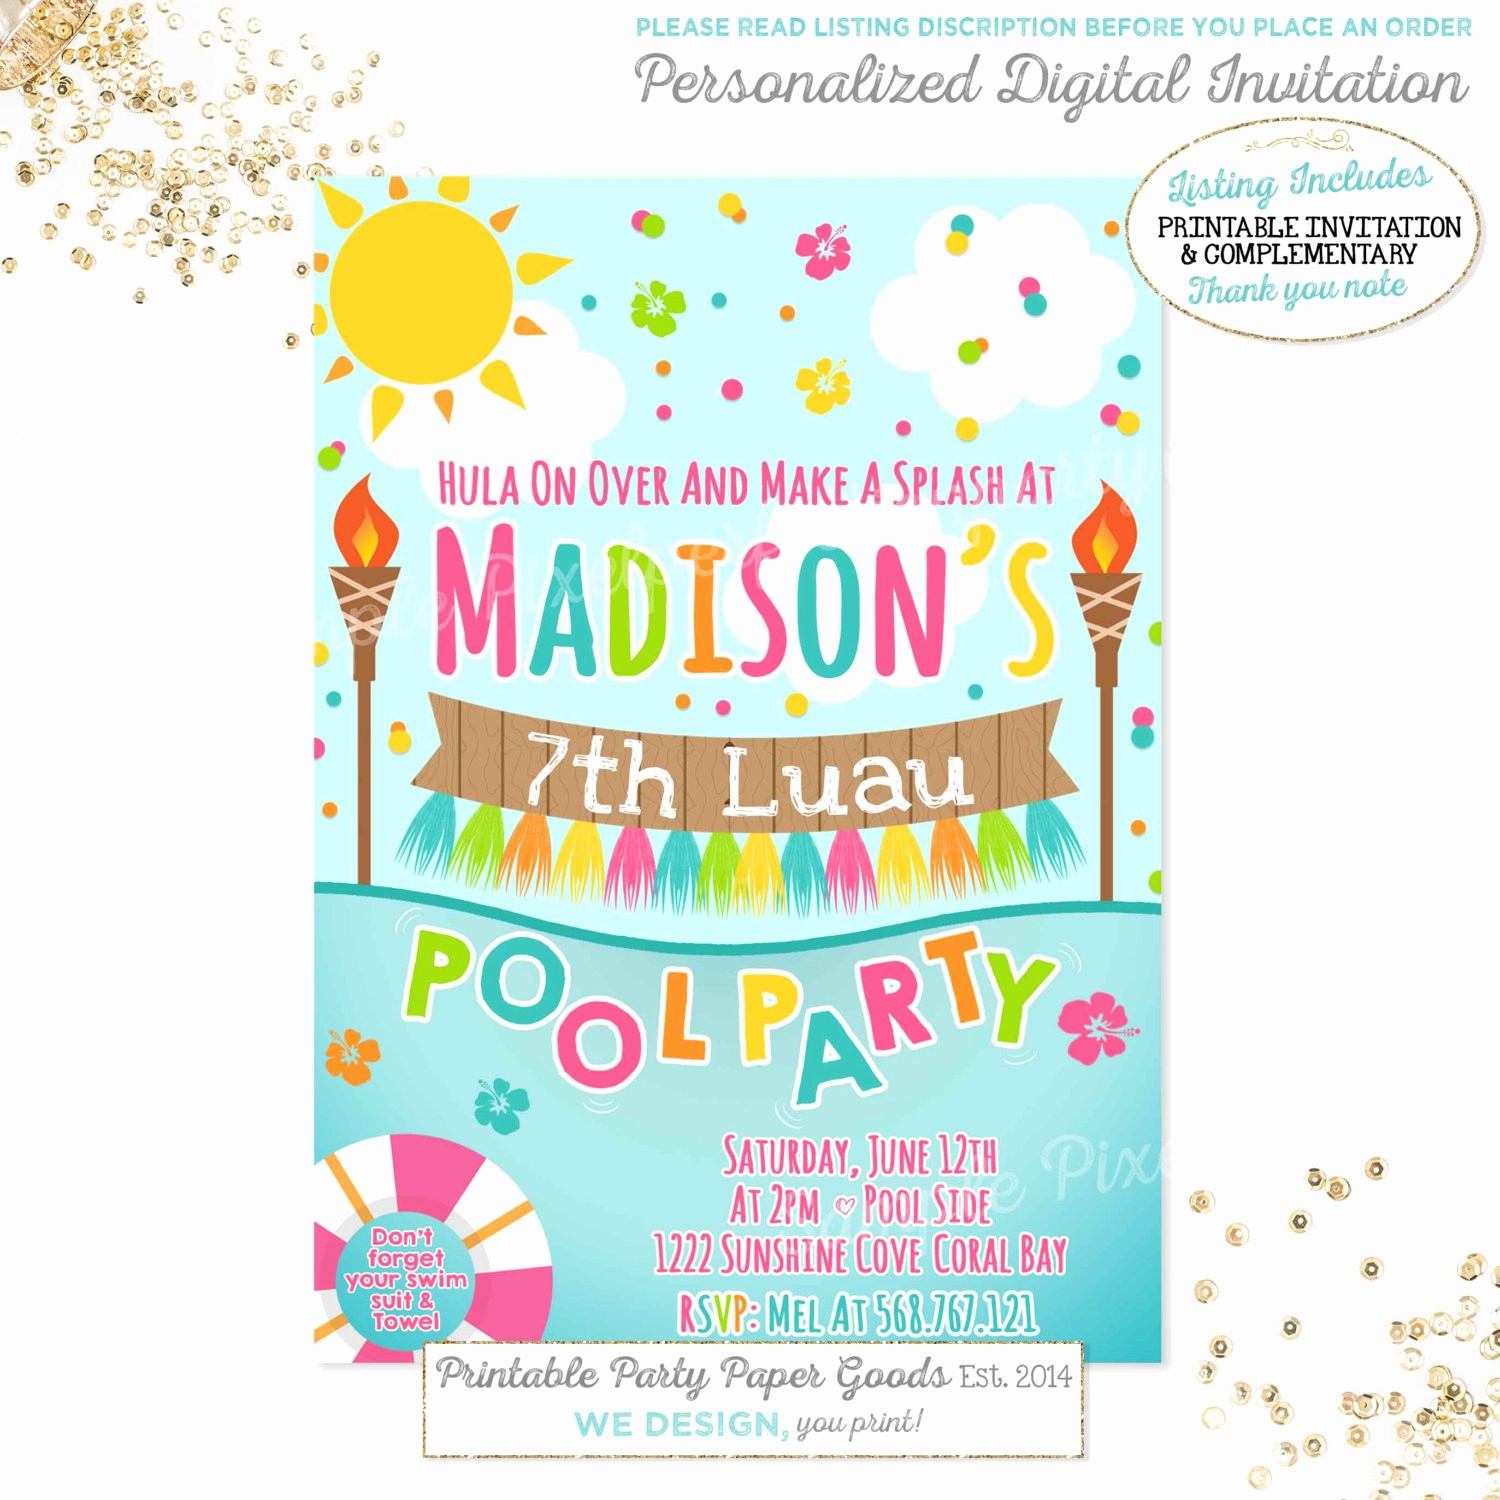 Hawaiian theme Party Invitations Printable Beautiful Luau Pool Party Invitation Luau Birthday Invitation Luau Pool